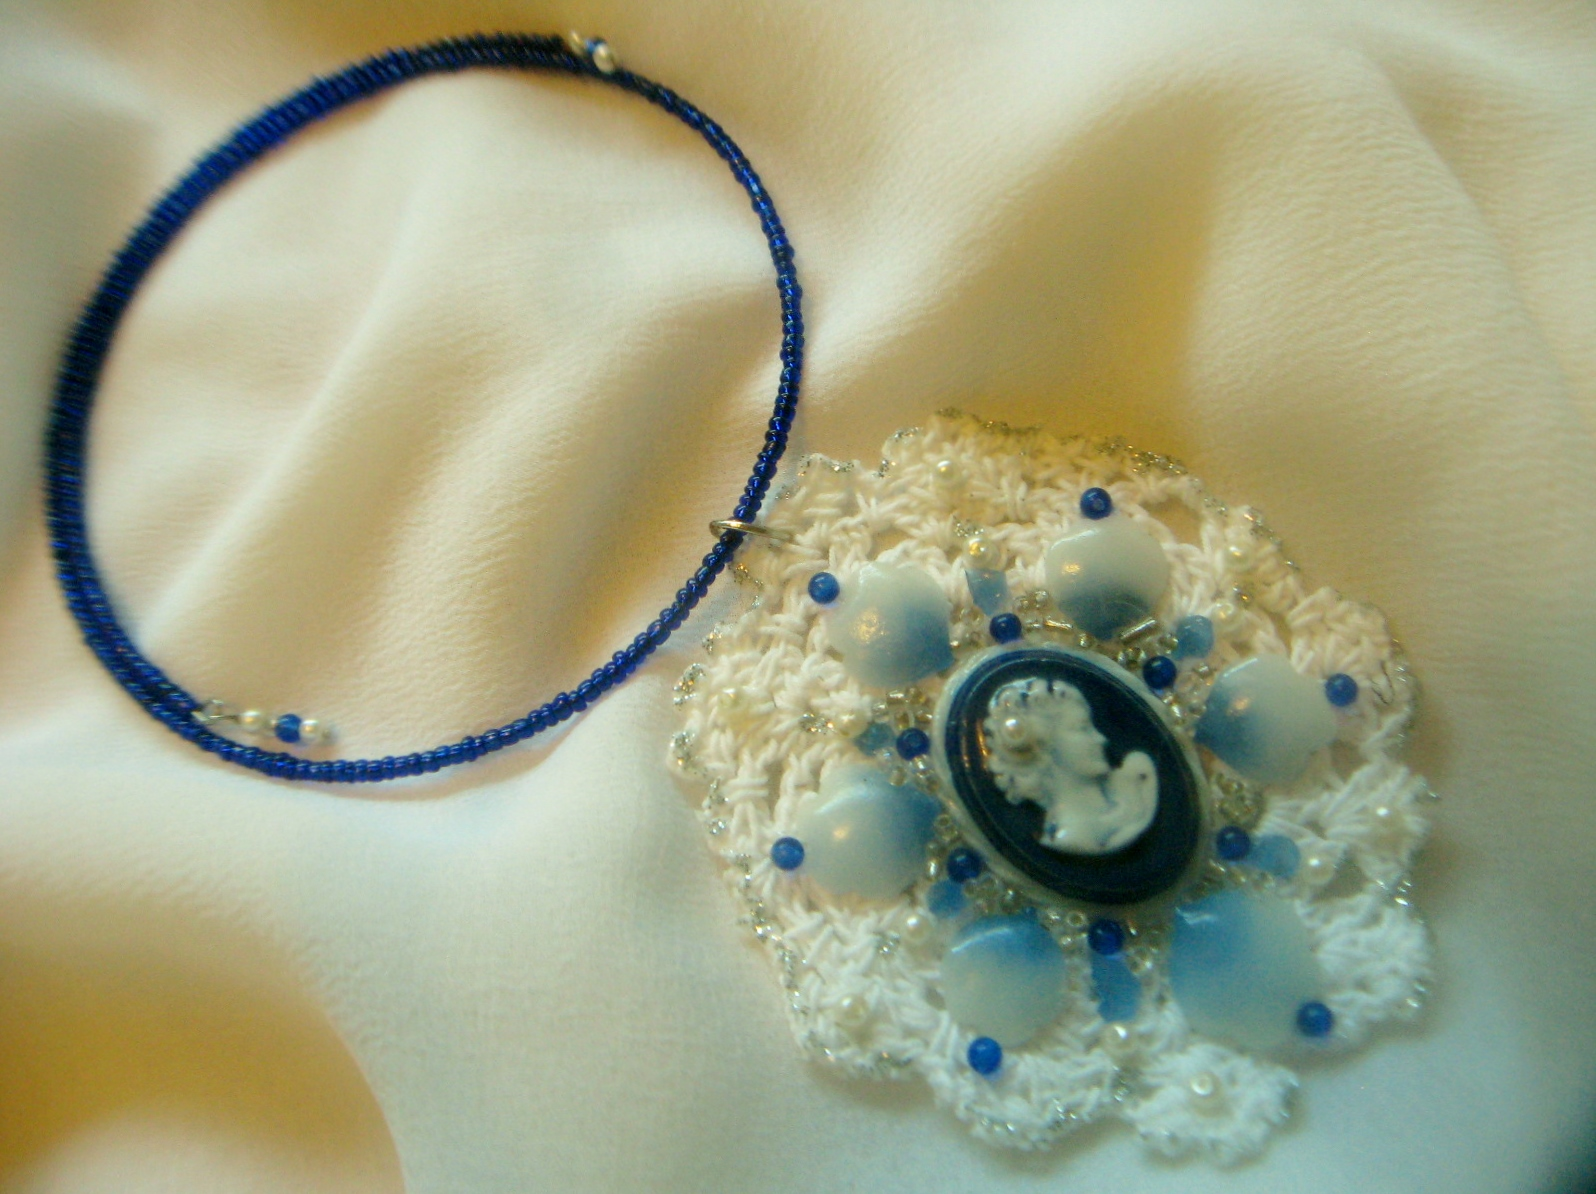 Classic Blue Cameo & Lace Necklaces